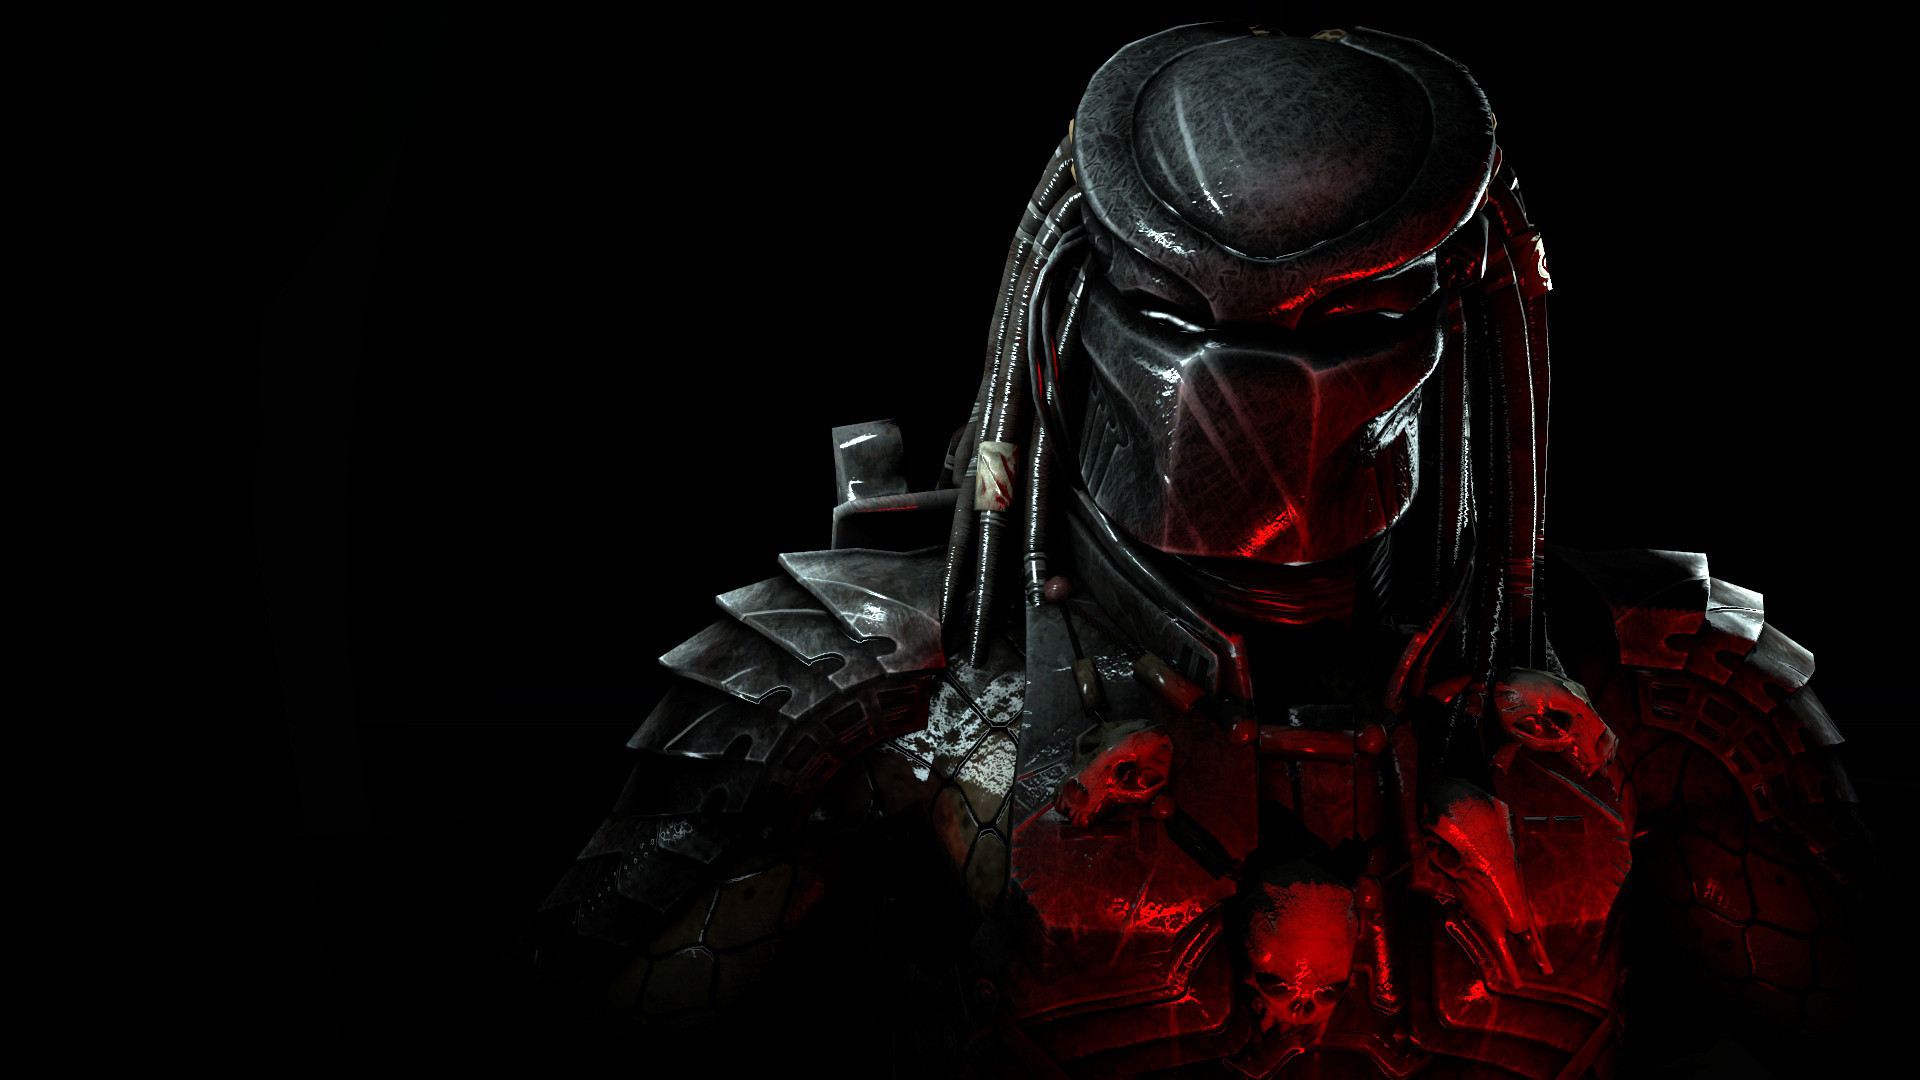 Image: Predator, fantasy, character, helmet, suit, scars, outfit, black background, light, game, Mortal Kombat X